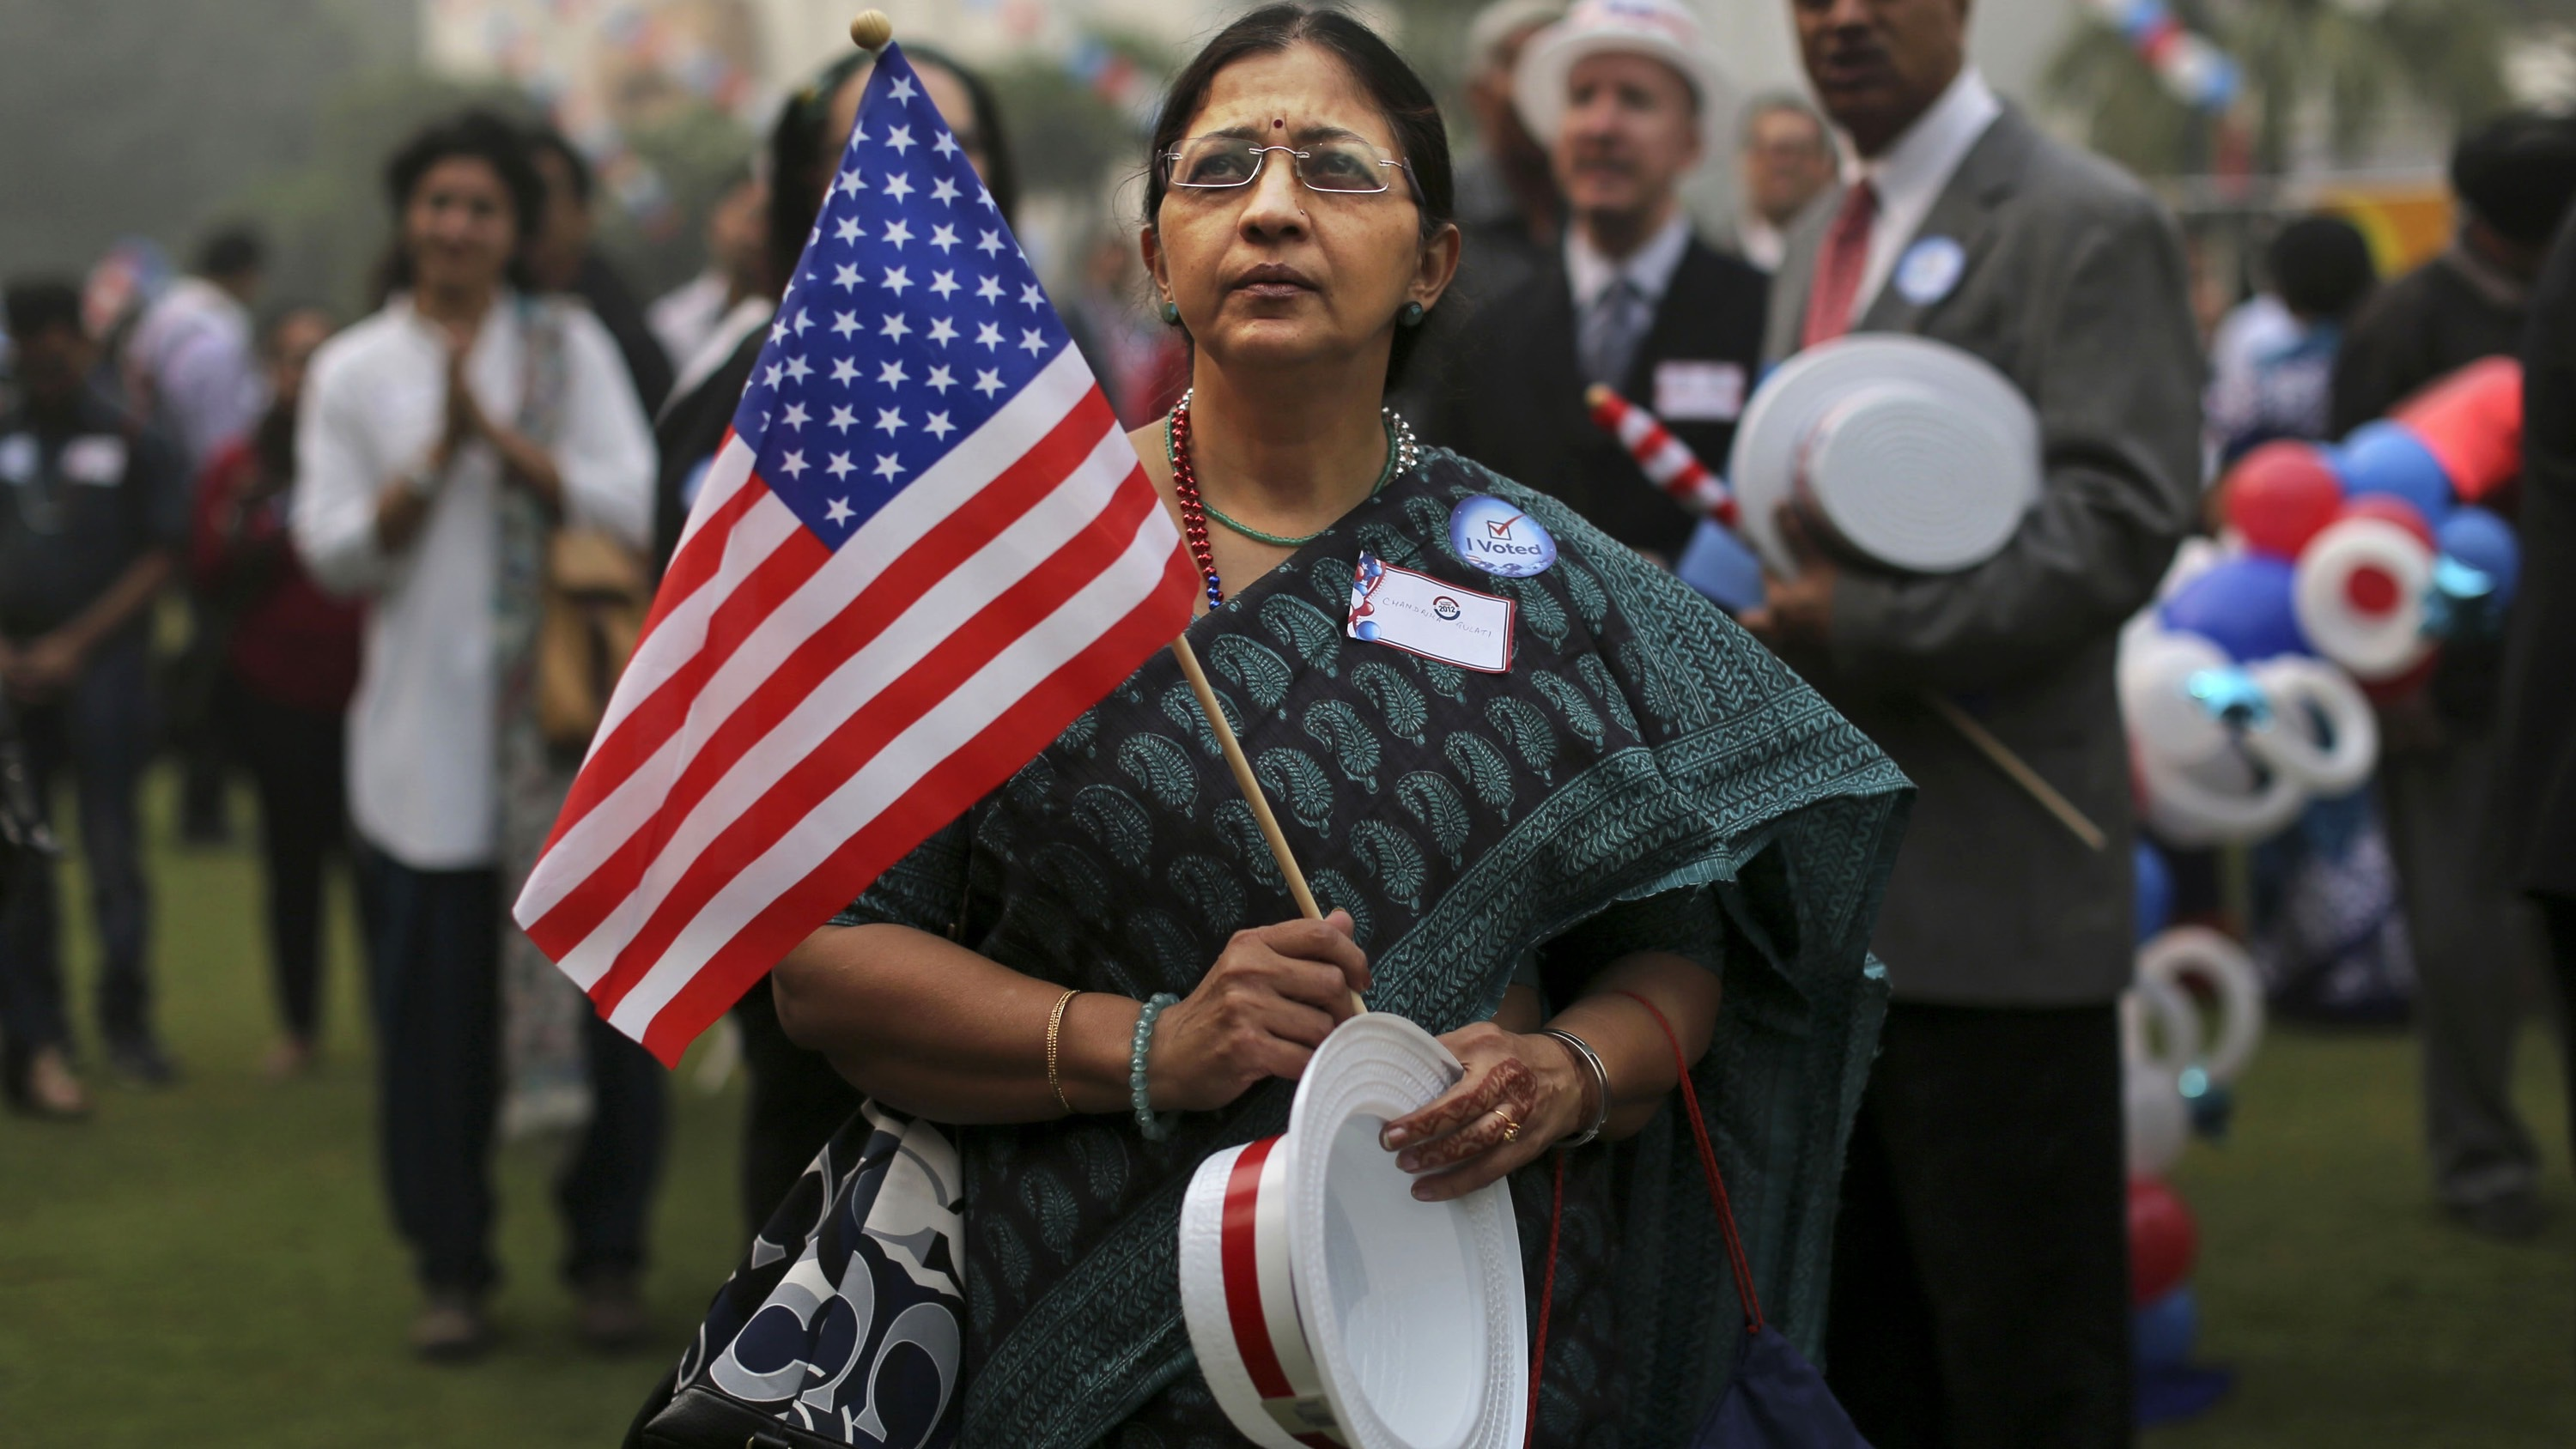 A woman wearing a sari watches during an event organized by the U.S embassy to mark the Presidential elections at the landmark Imperial Hotel in New Delhi, India, Wednesday, Nov. 7, 2012. Obama captured a second White House term, blunting a mighty challenge by Republican Mitt Romney as Americans voted for a leader they knew over a wealthy businessman they did not. (AP Photo/Kevin Frayer)